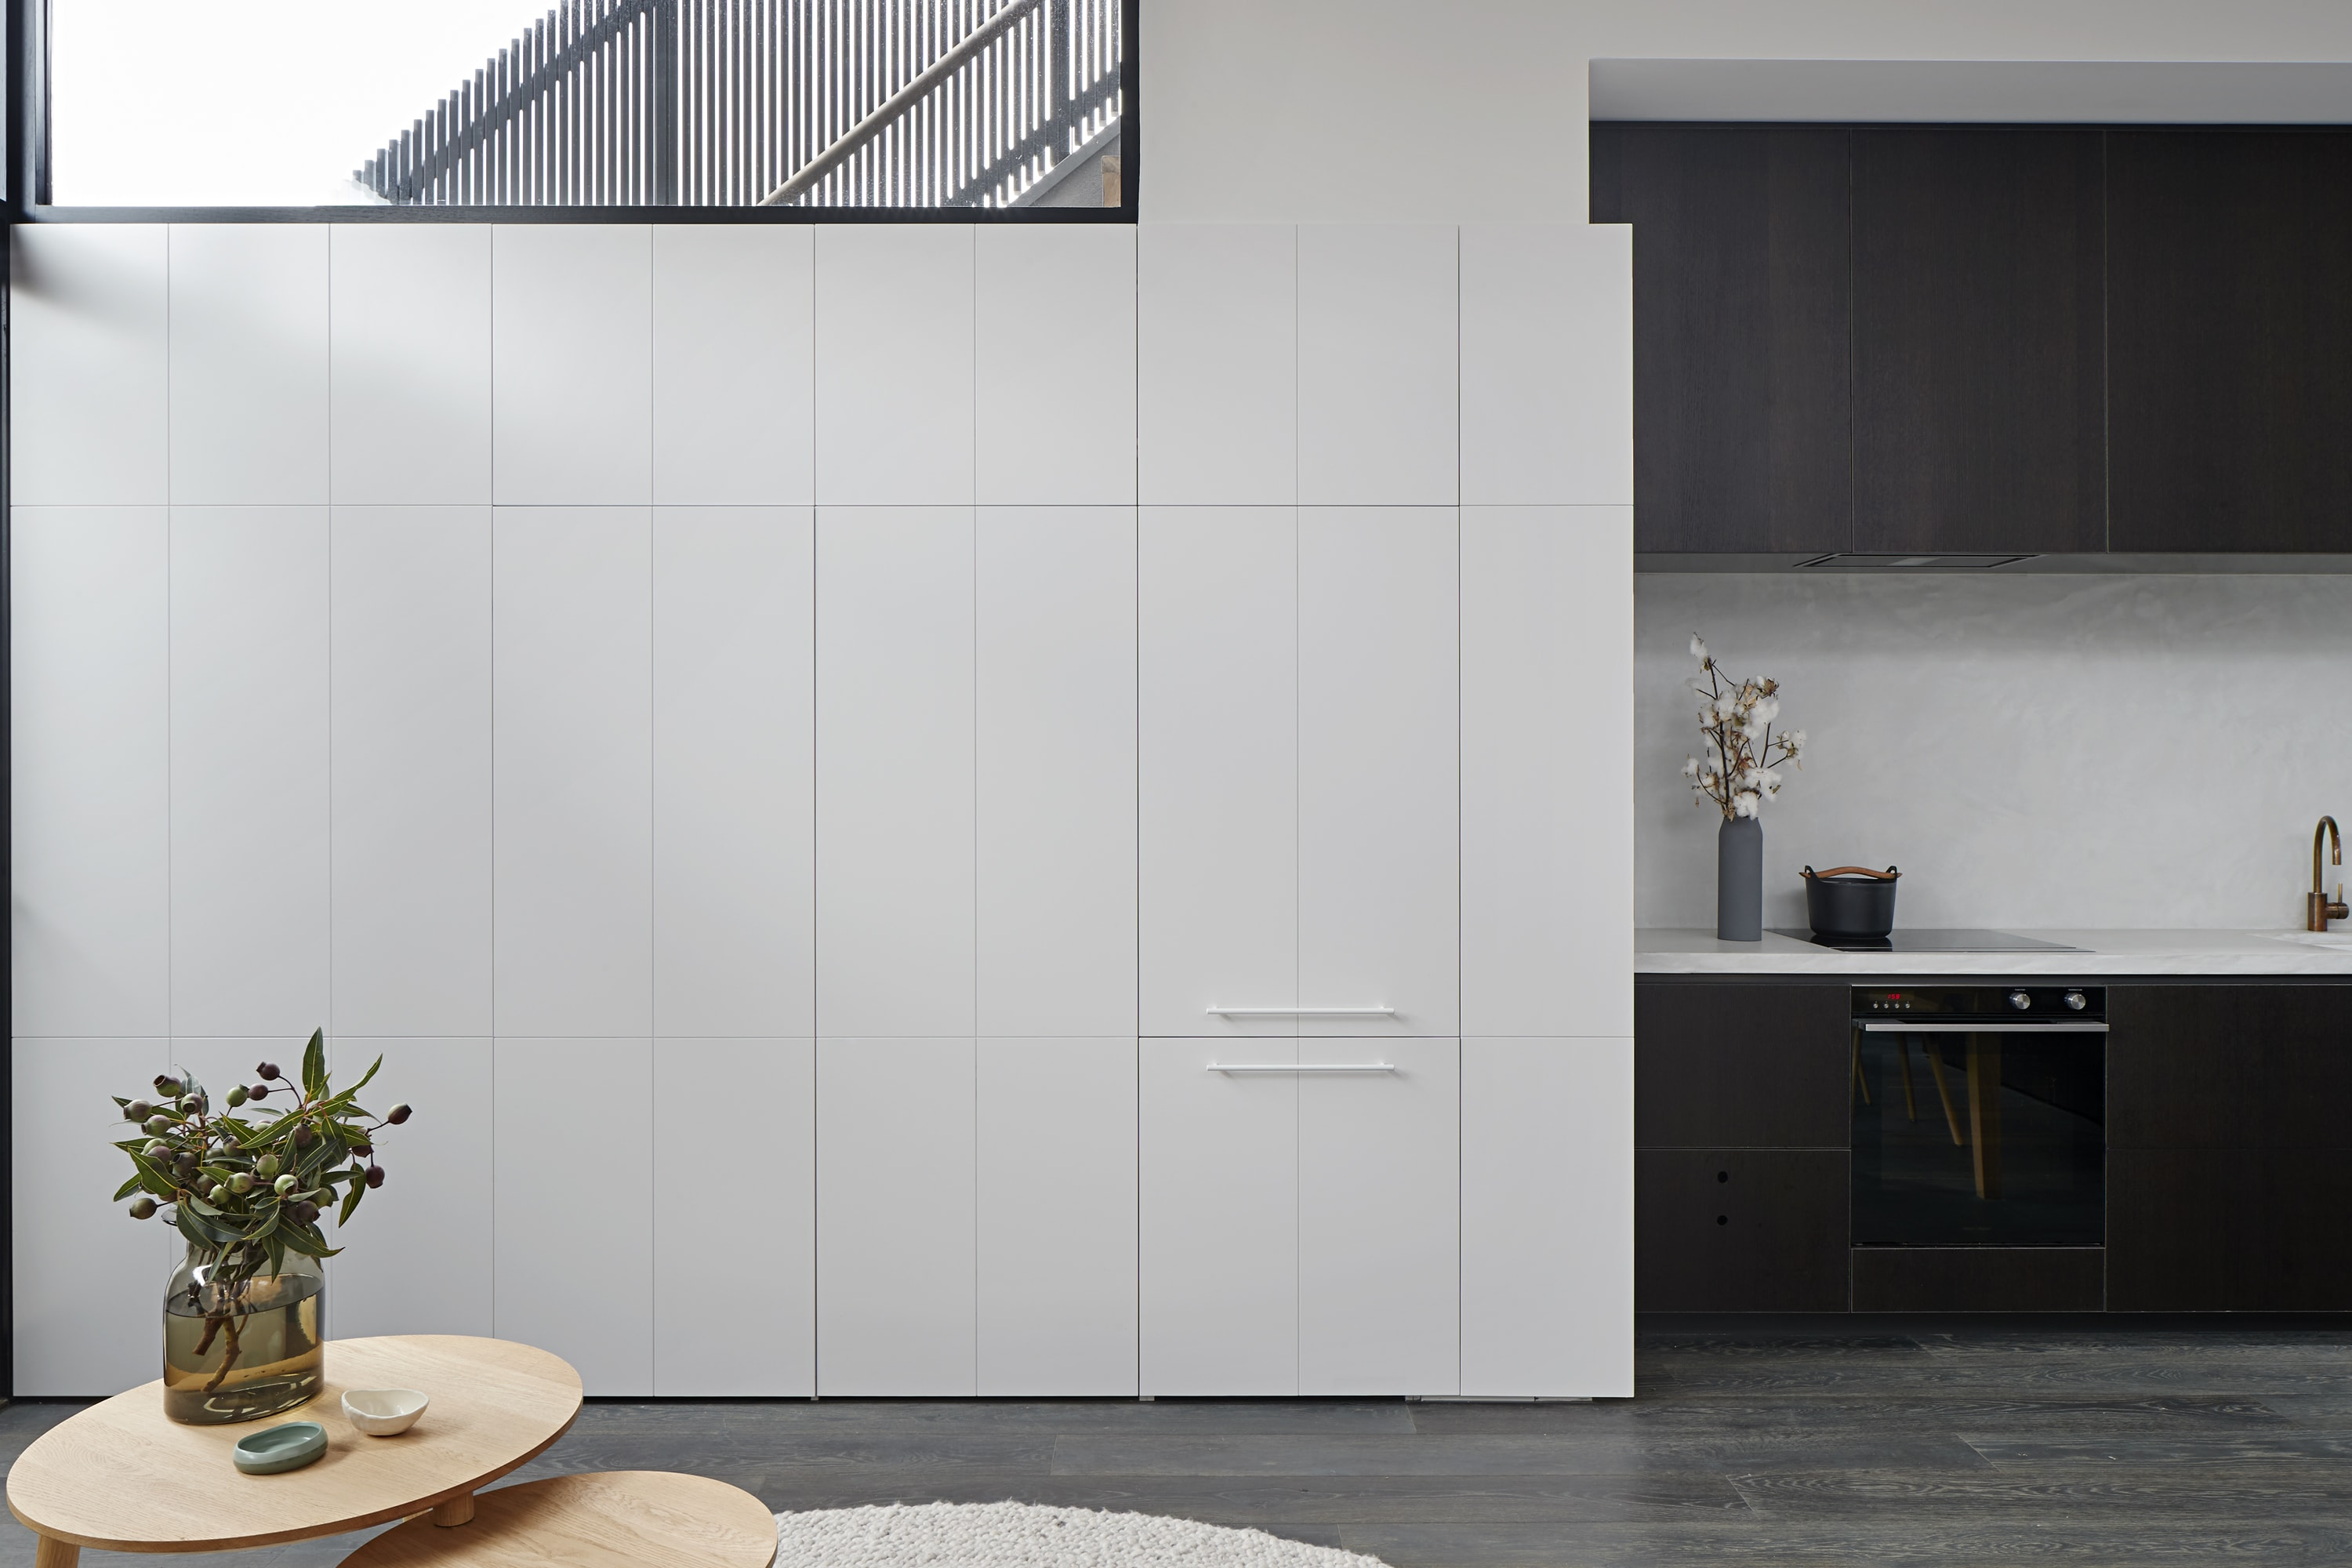 The Pocket House By Whiting Architects The Fisher & Paykel Series Melbourne, Victoria, Australiaf&p Whiting Littleogrady ©smg 9182 Min